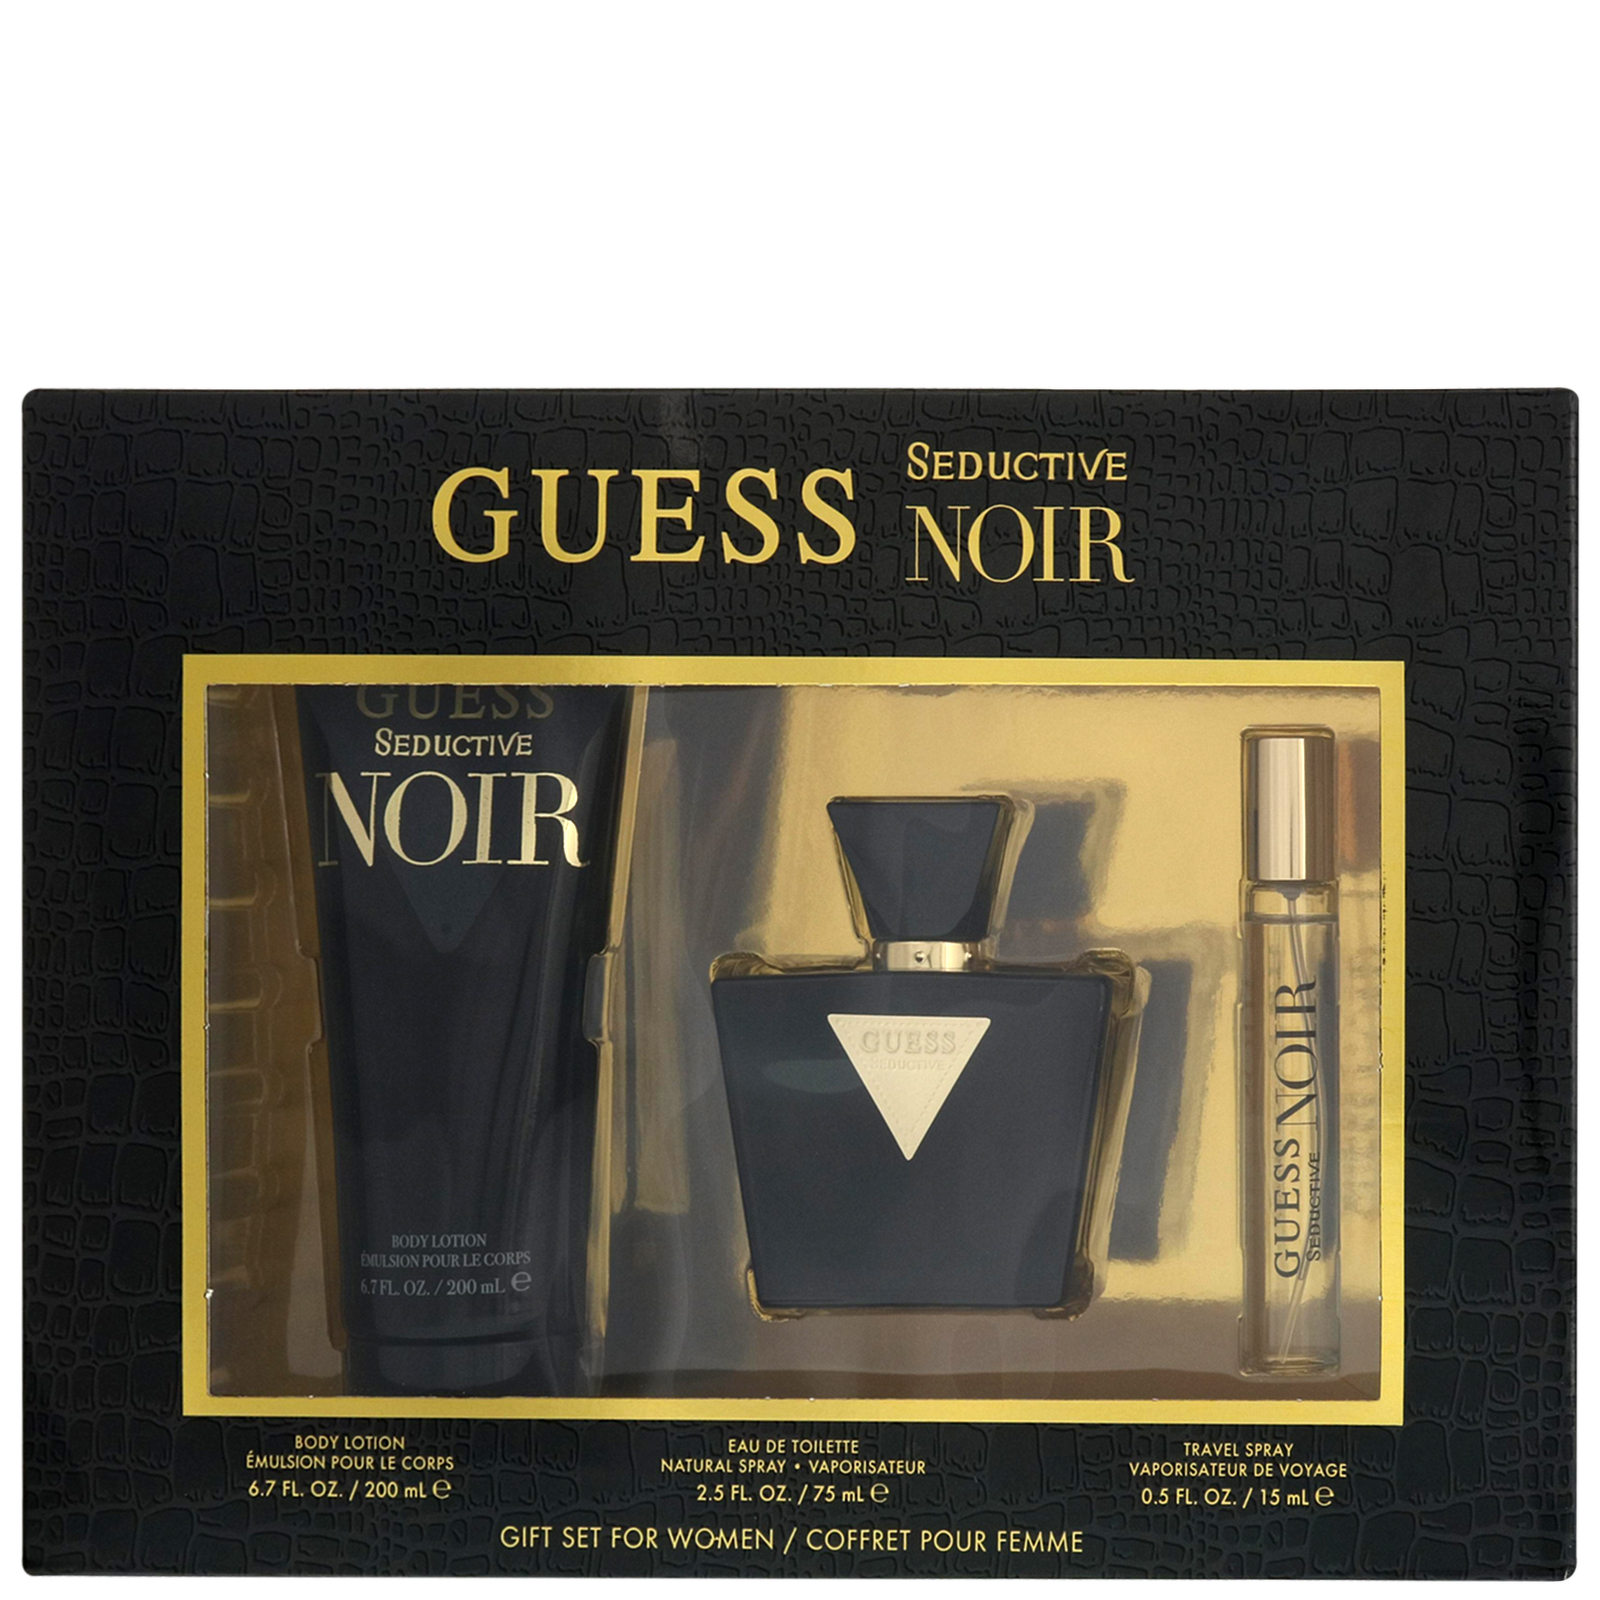 Guess Seductive Noir Eau de Toilette Spray 75ml Gift Set